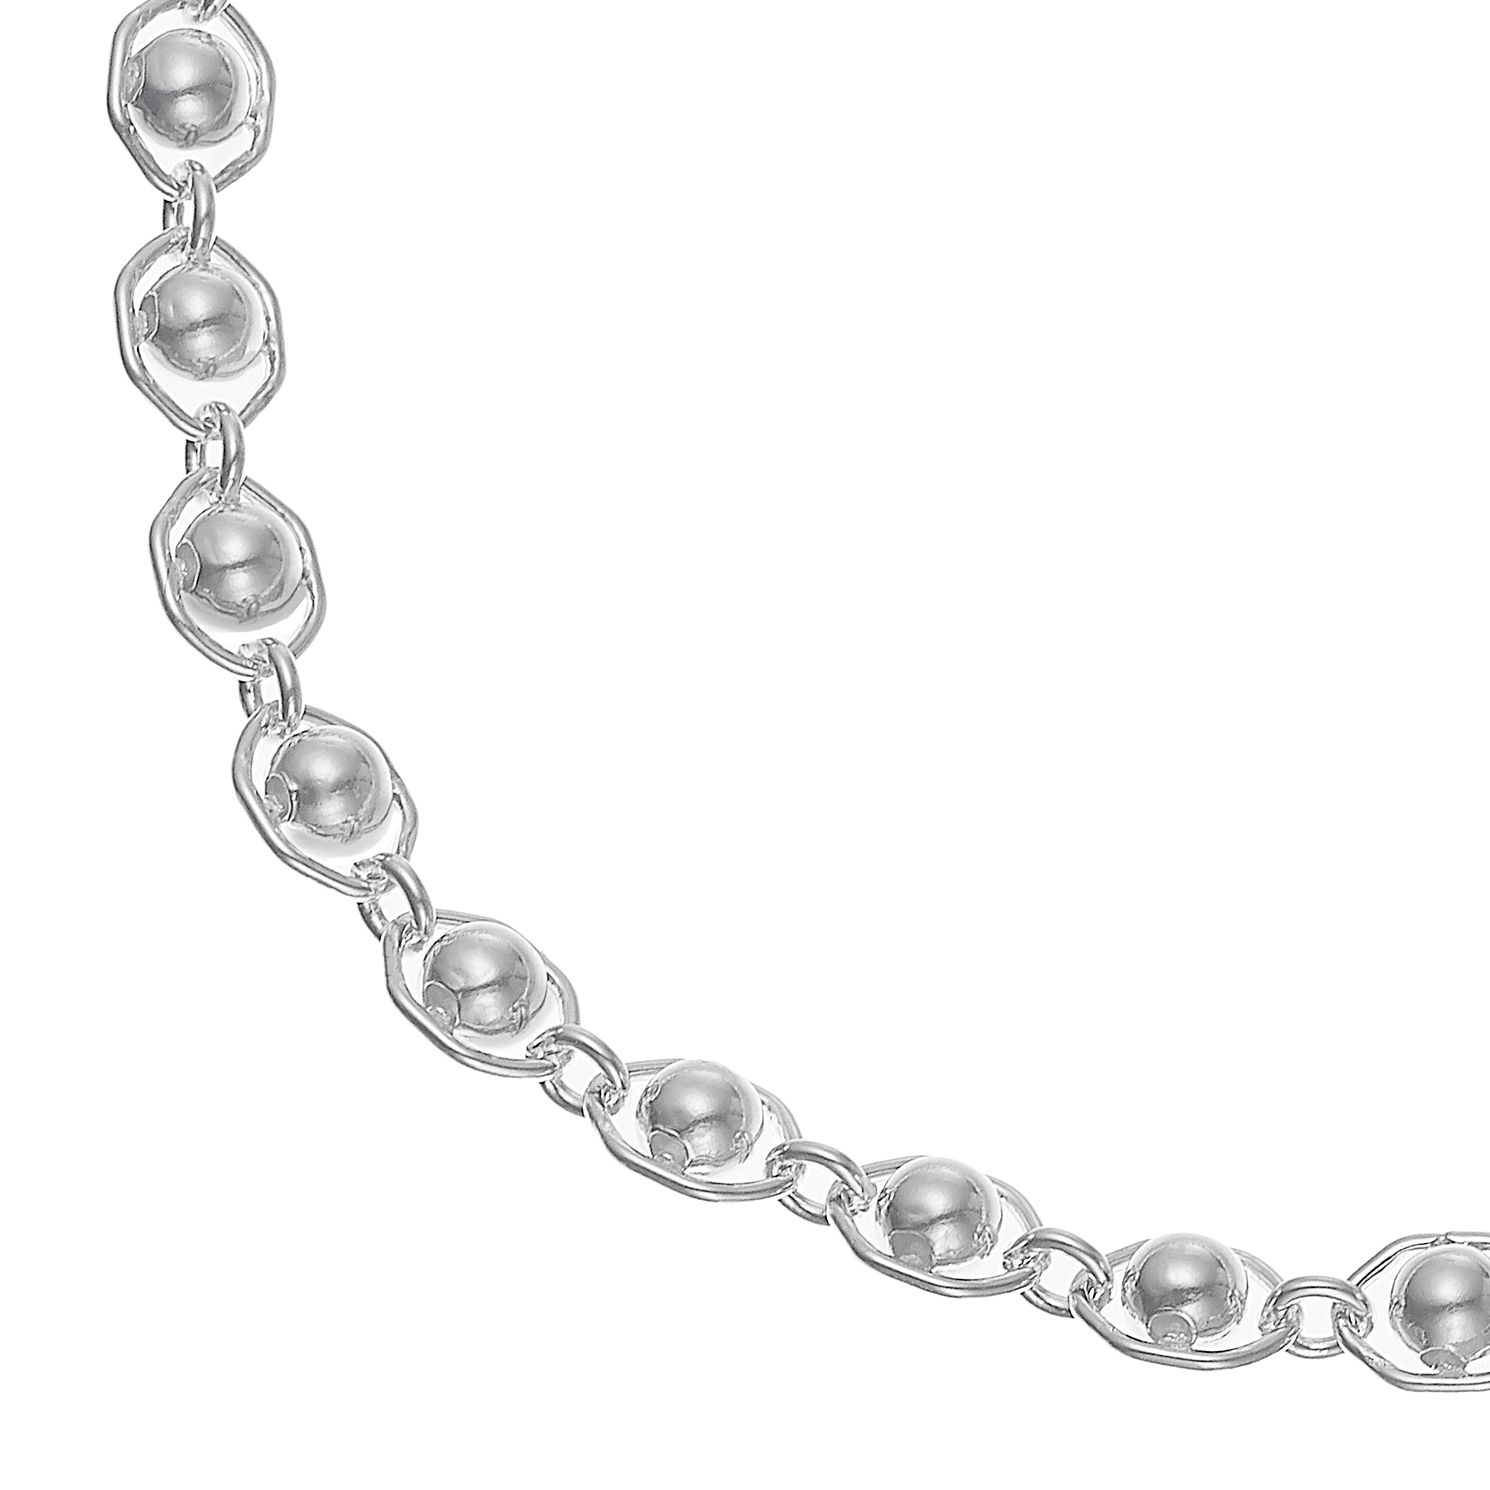 Silver Fancy Bead Link Bracelet 7.5 inches - Product number 4841670